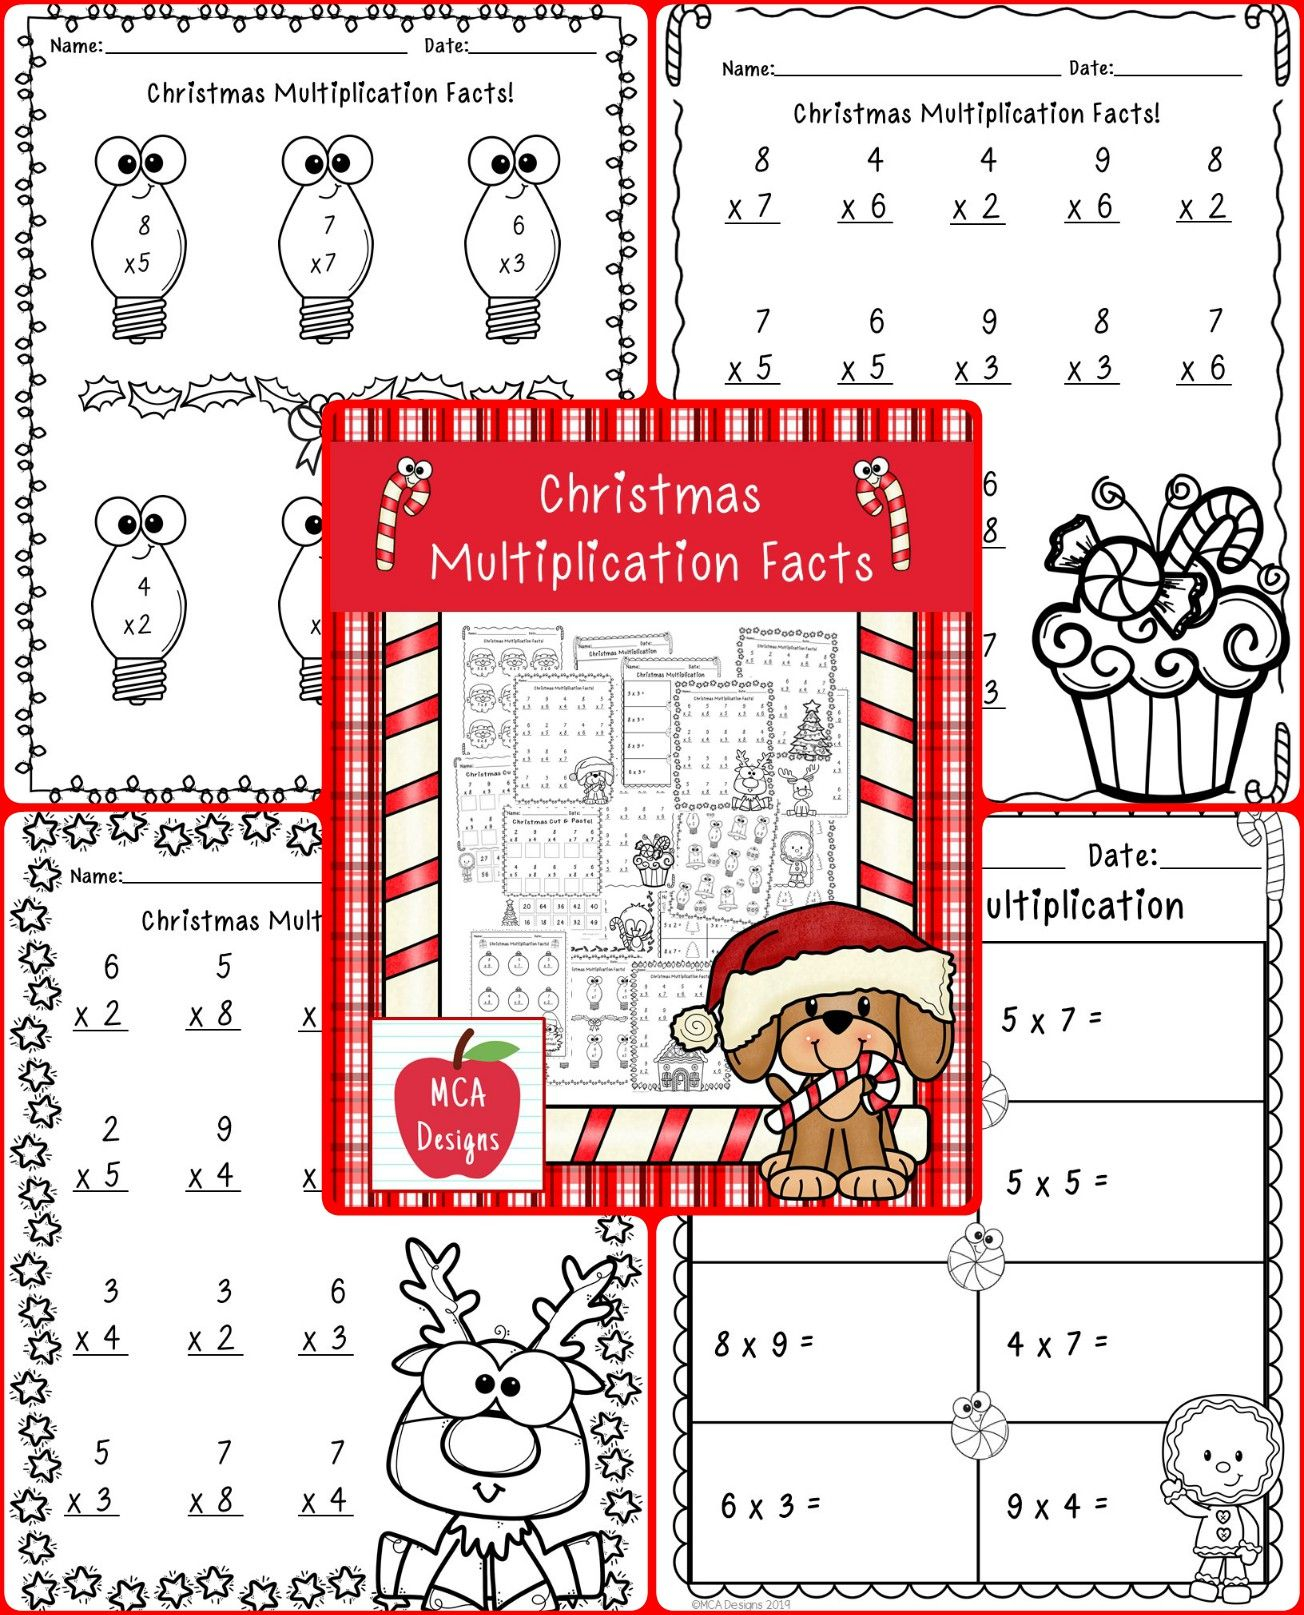 Christmas Multiplication Facts | Multiplication Facts